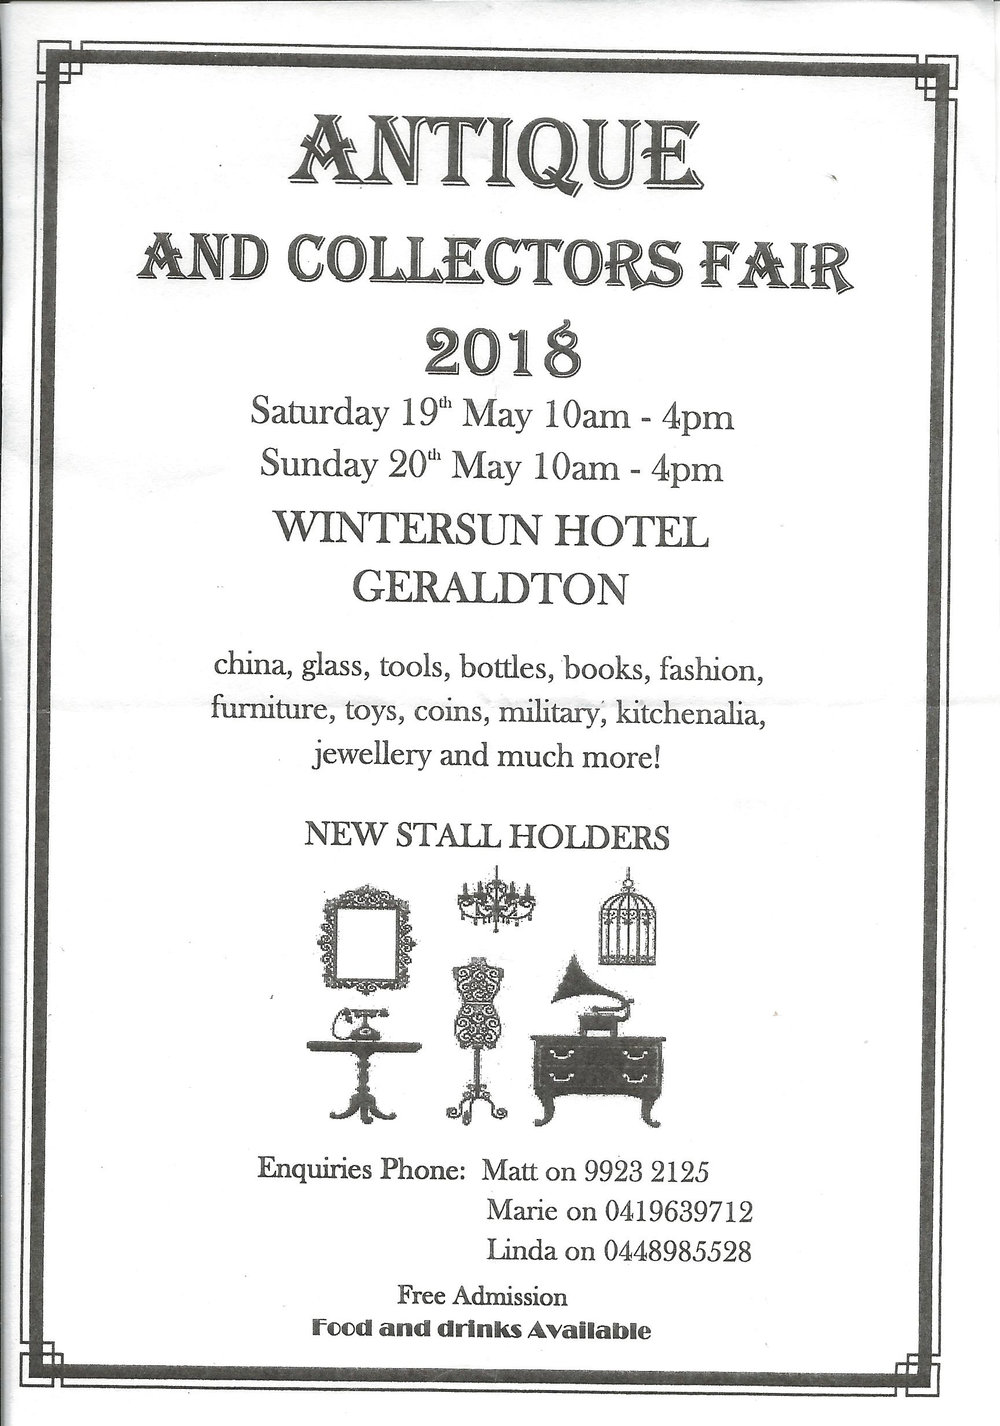 17967424_Antique & Collectors Fair 2018.jpg